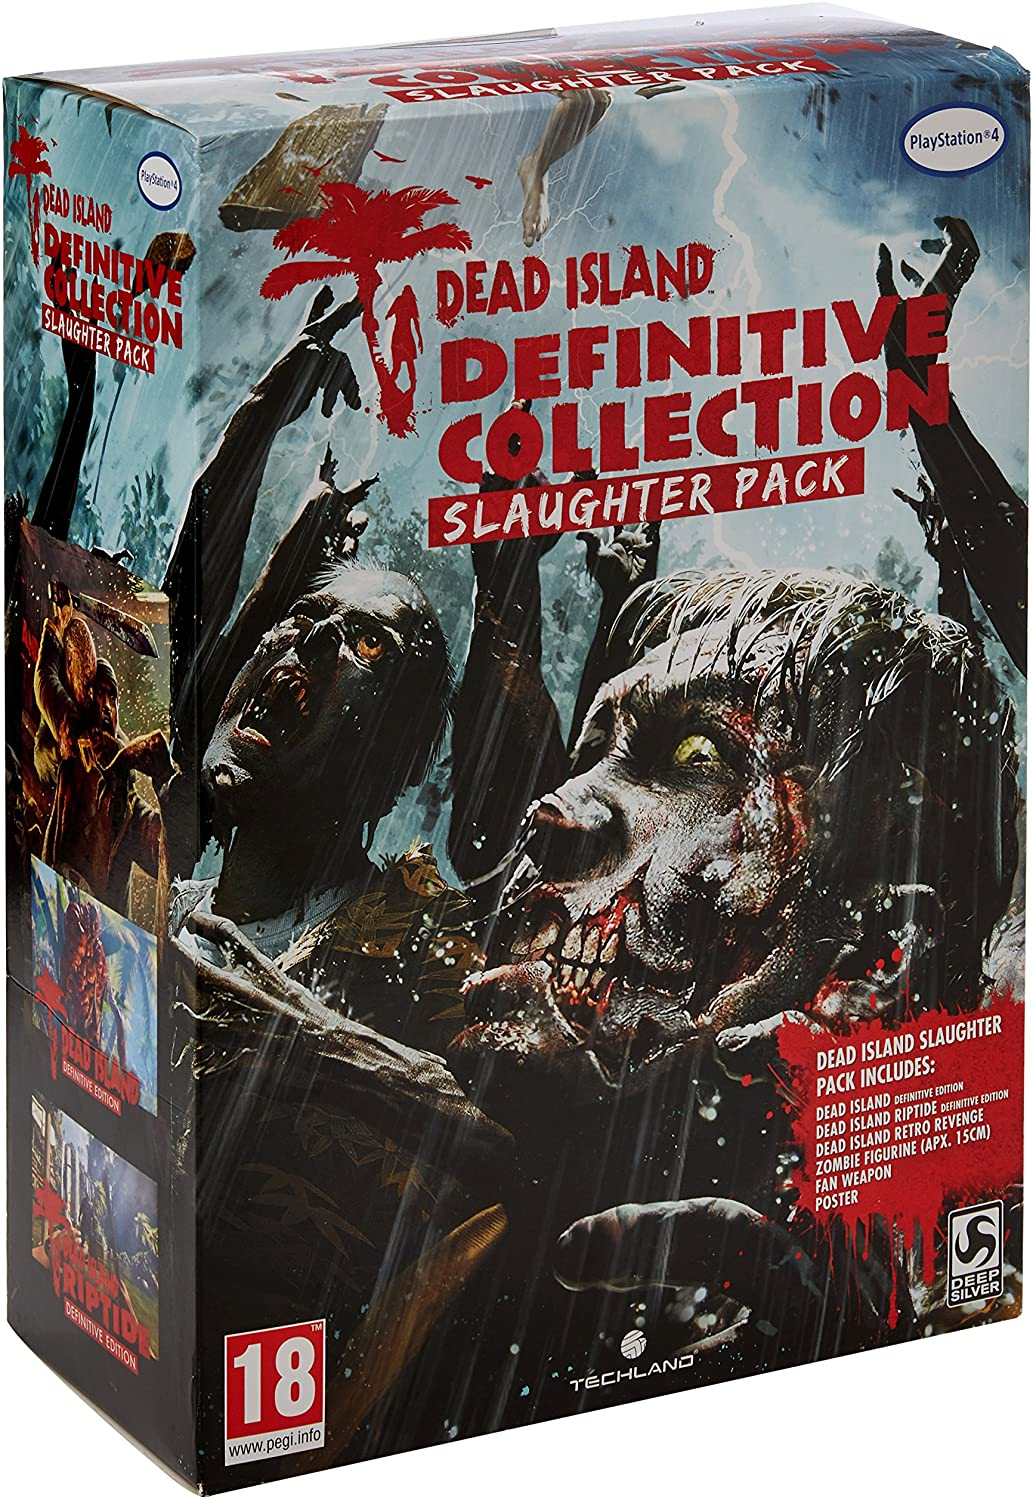 Dead Island Definitive Collection Slaughter Pack